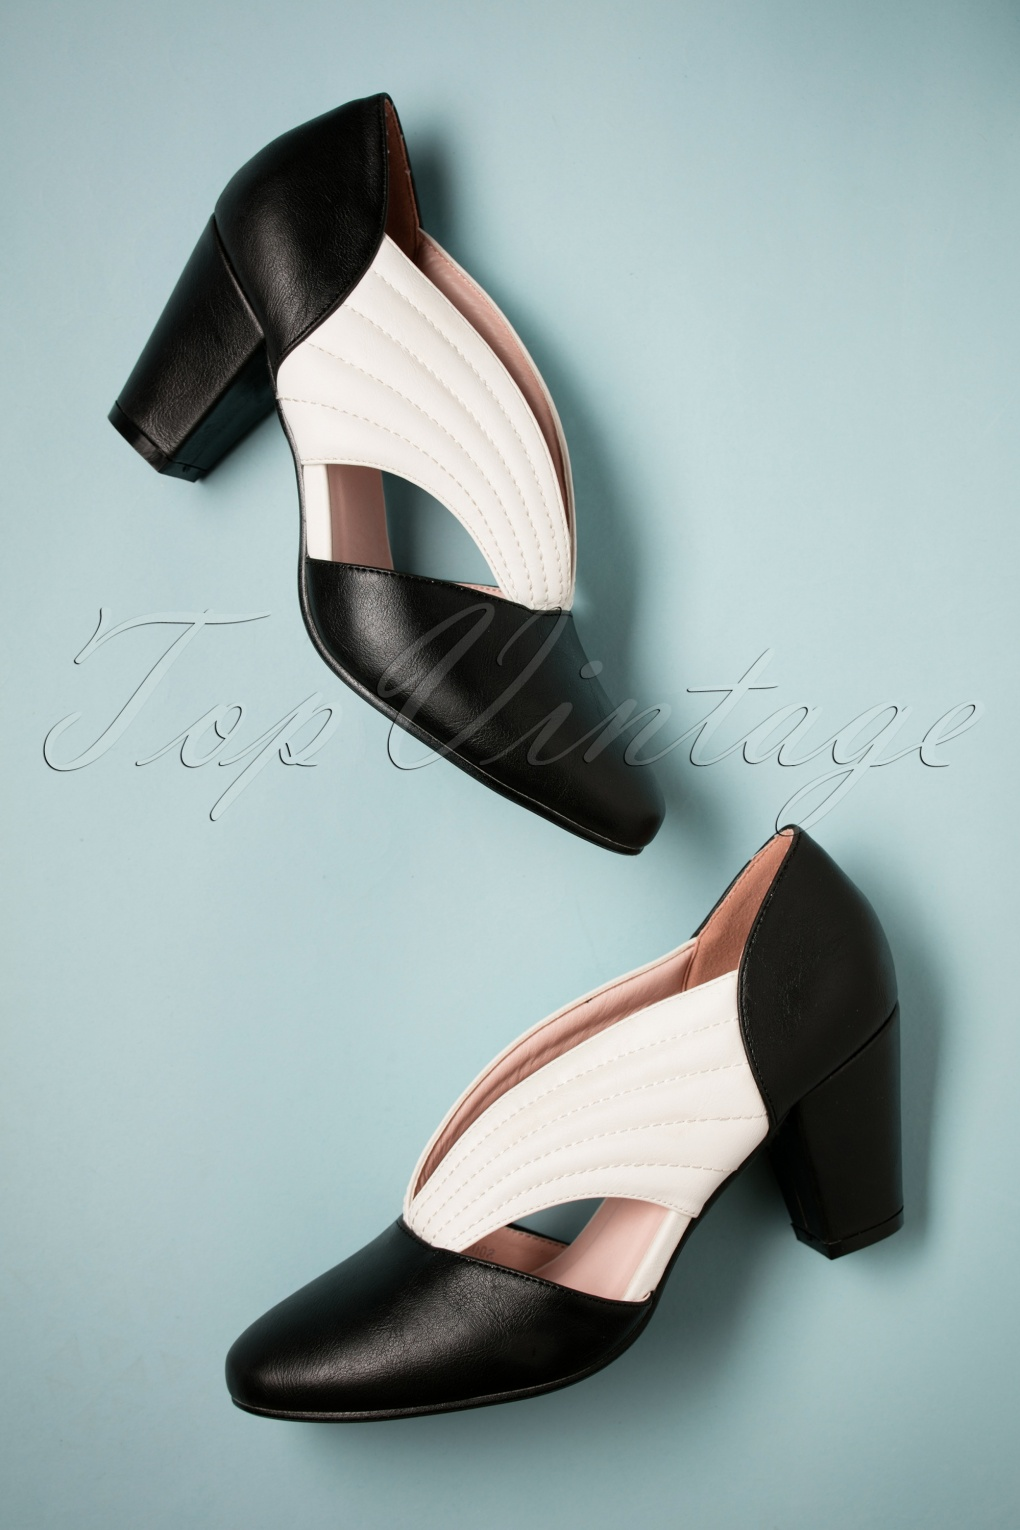 Authentic Natural 1950s Makeup History and Tutorial 40s Tanya Pumps in Black and Ivory £46.69 AT vintagedancer.com